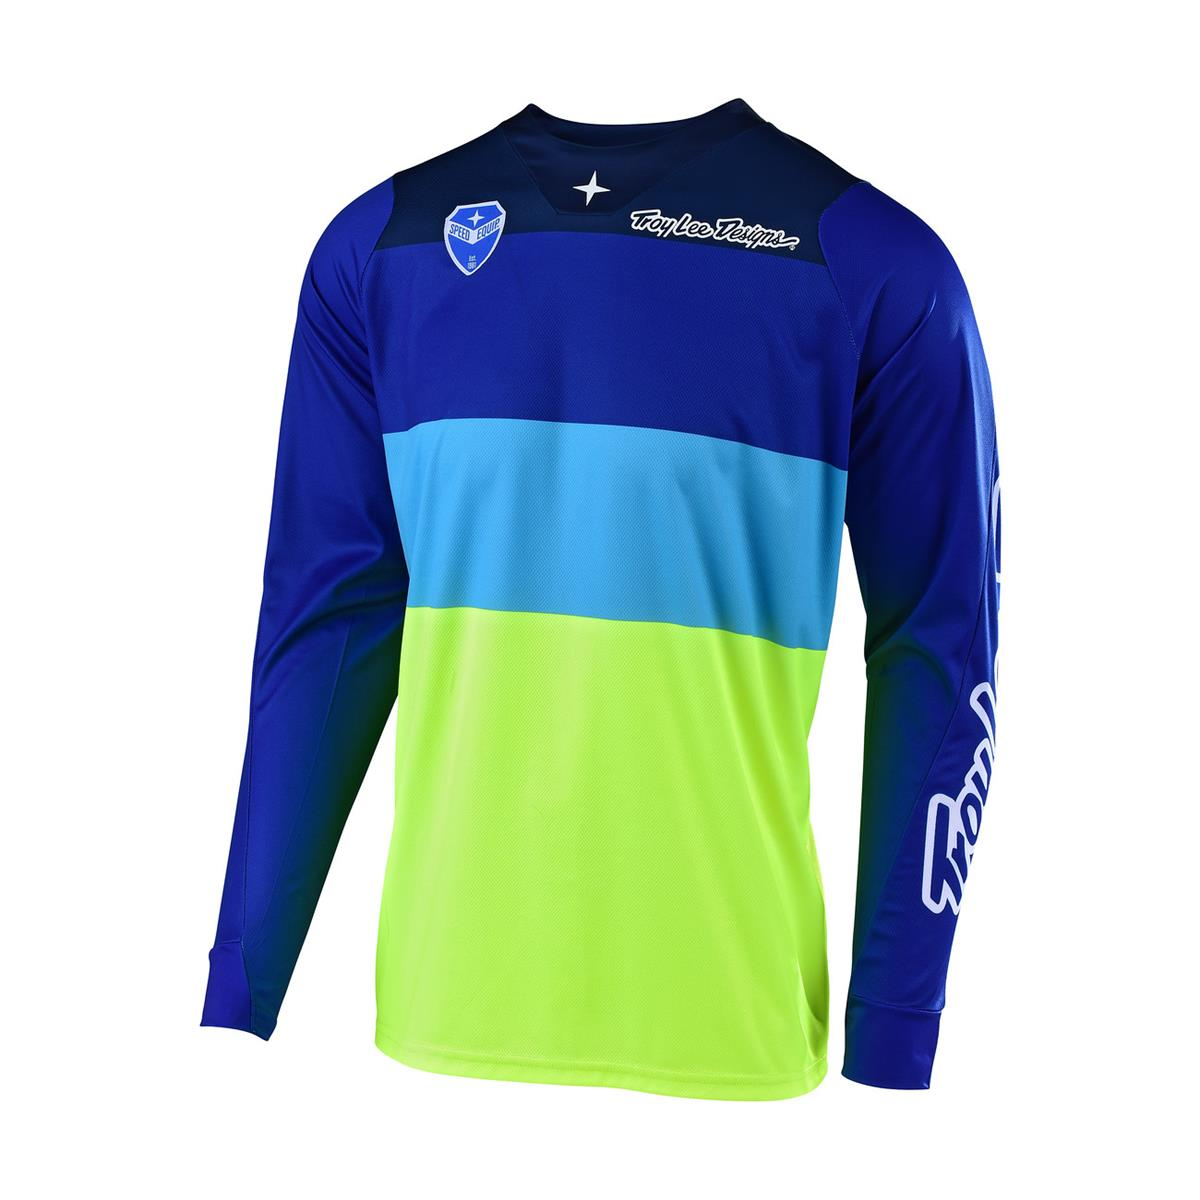 Troy Lee Designs Jersey SE Beta - Flo Gelb/Blau